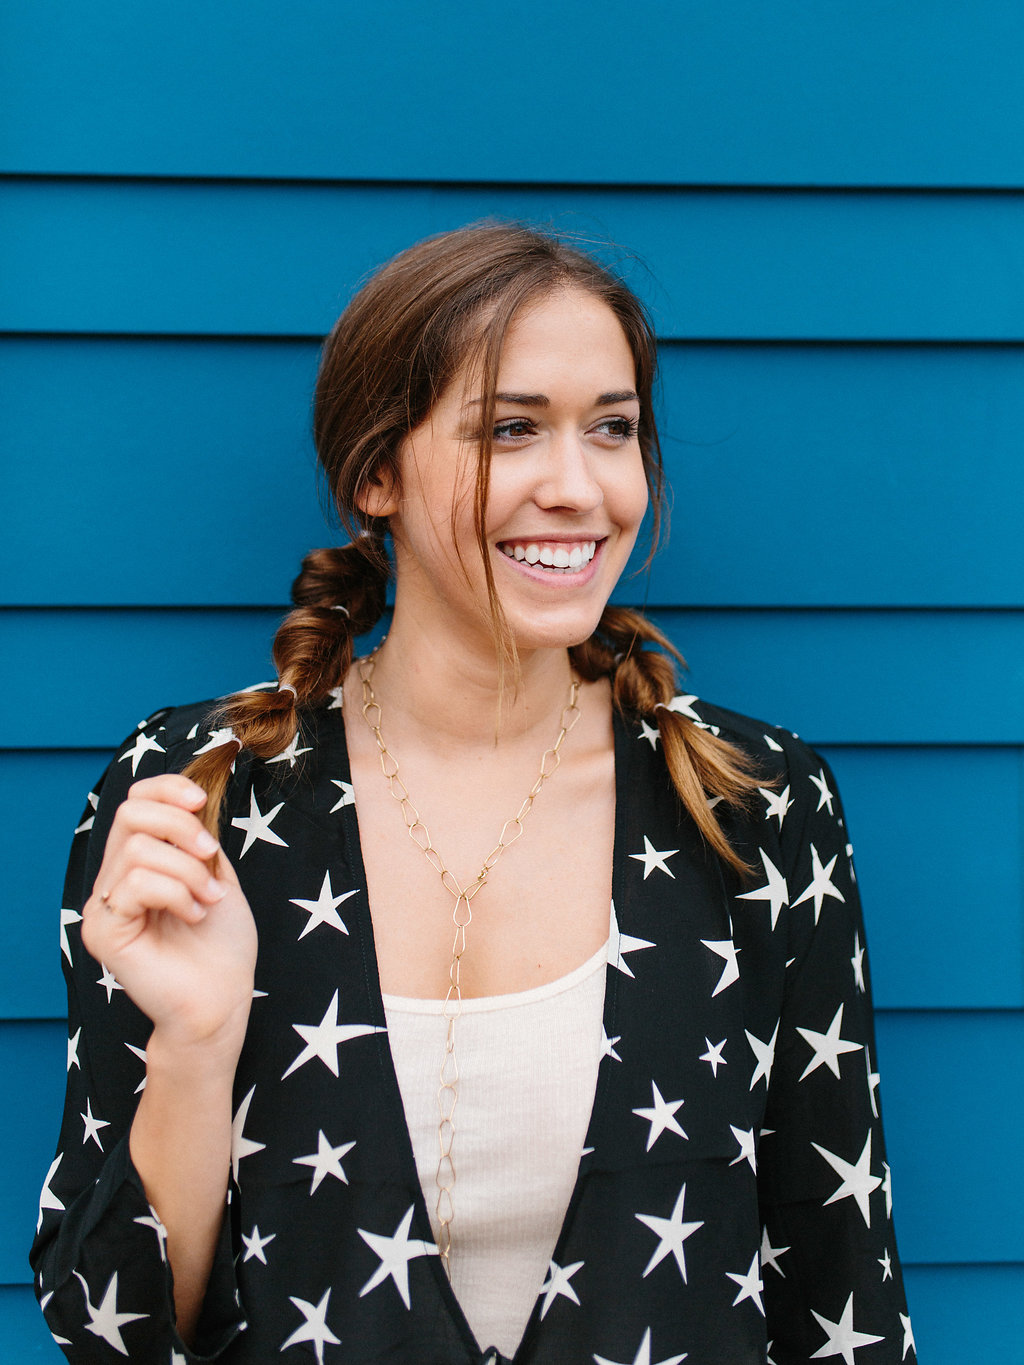 model smiling with pigtails